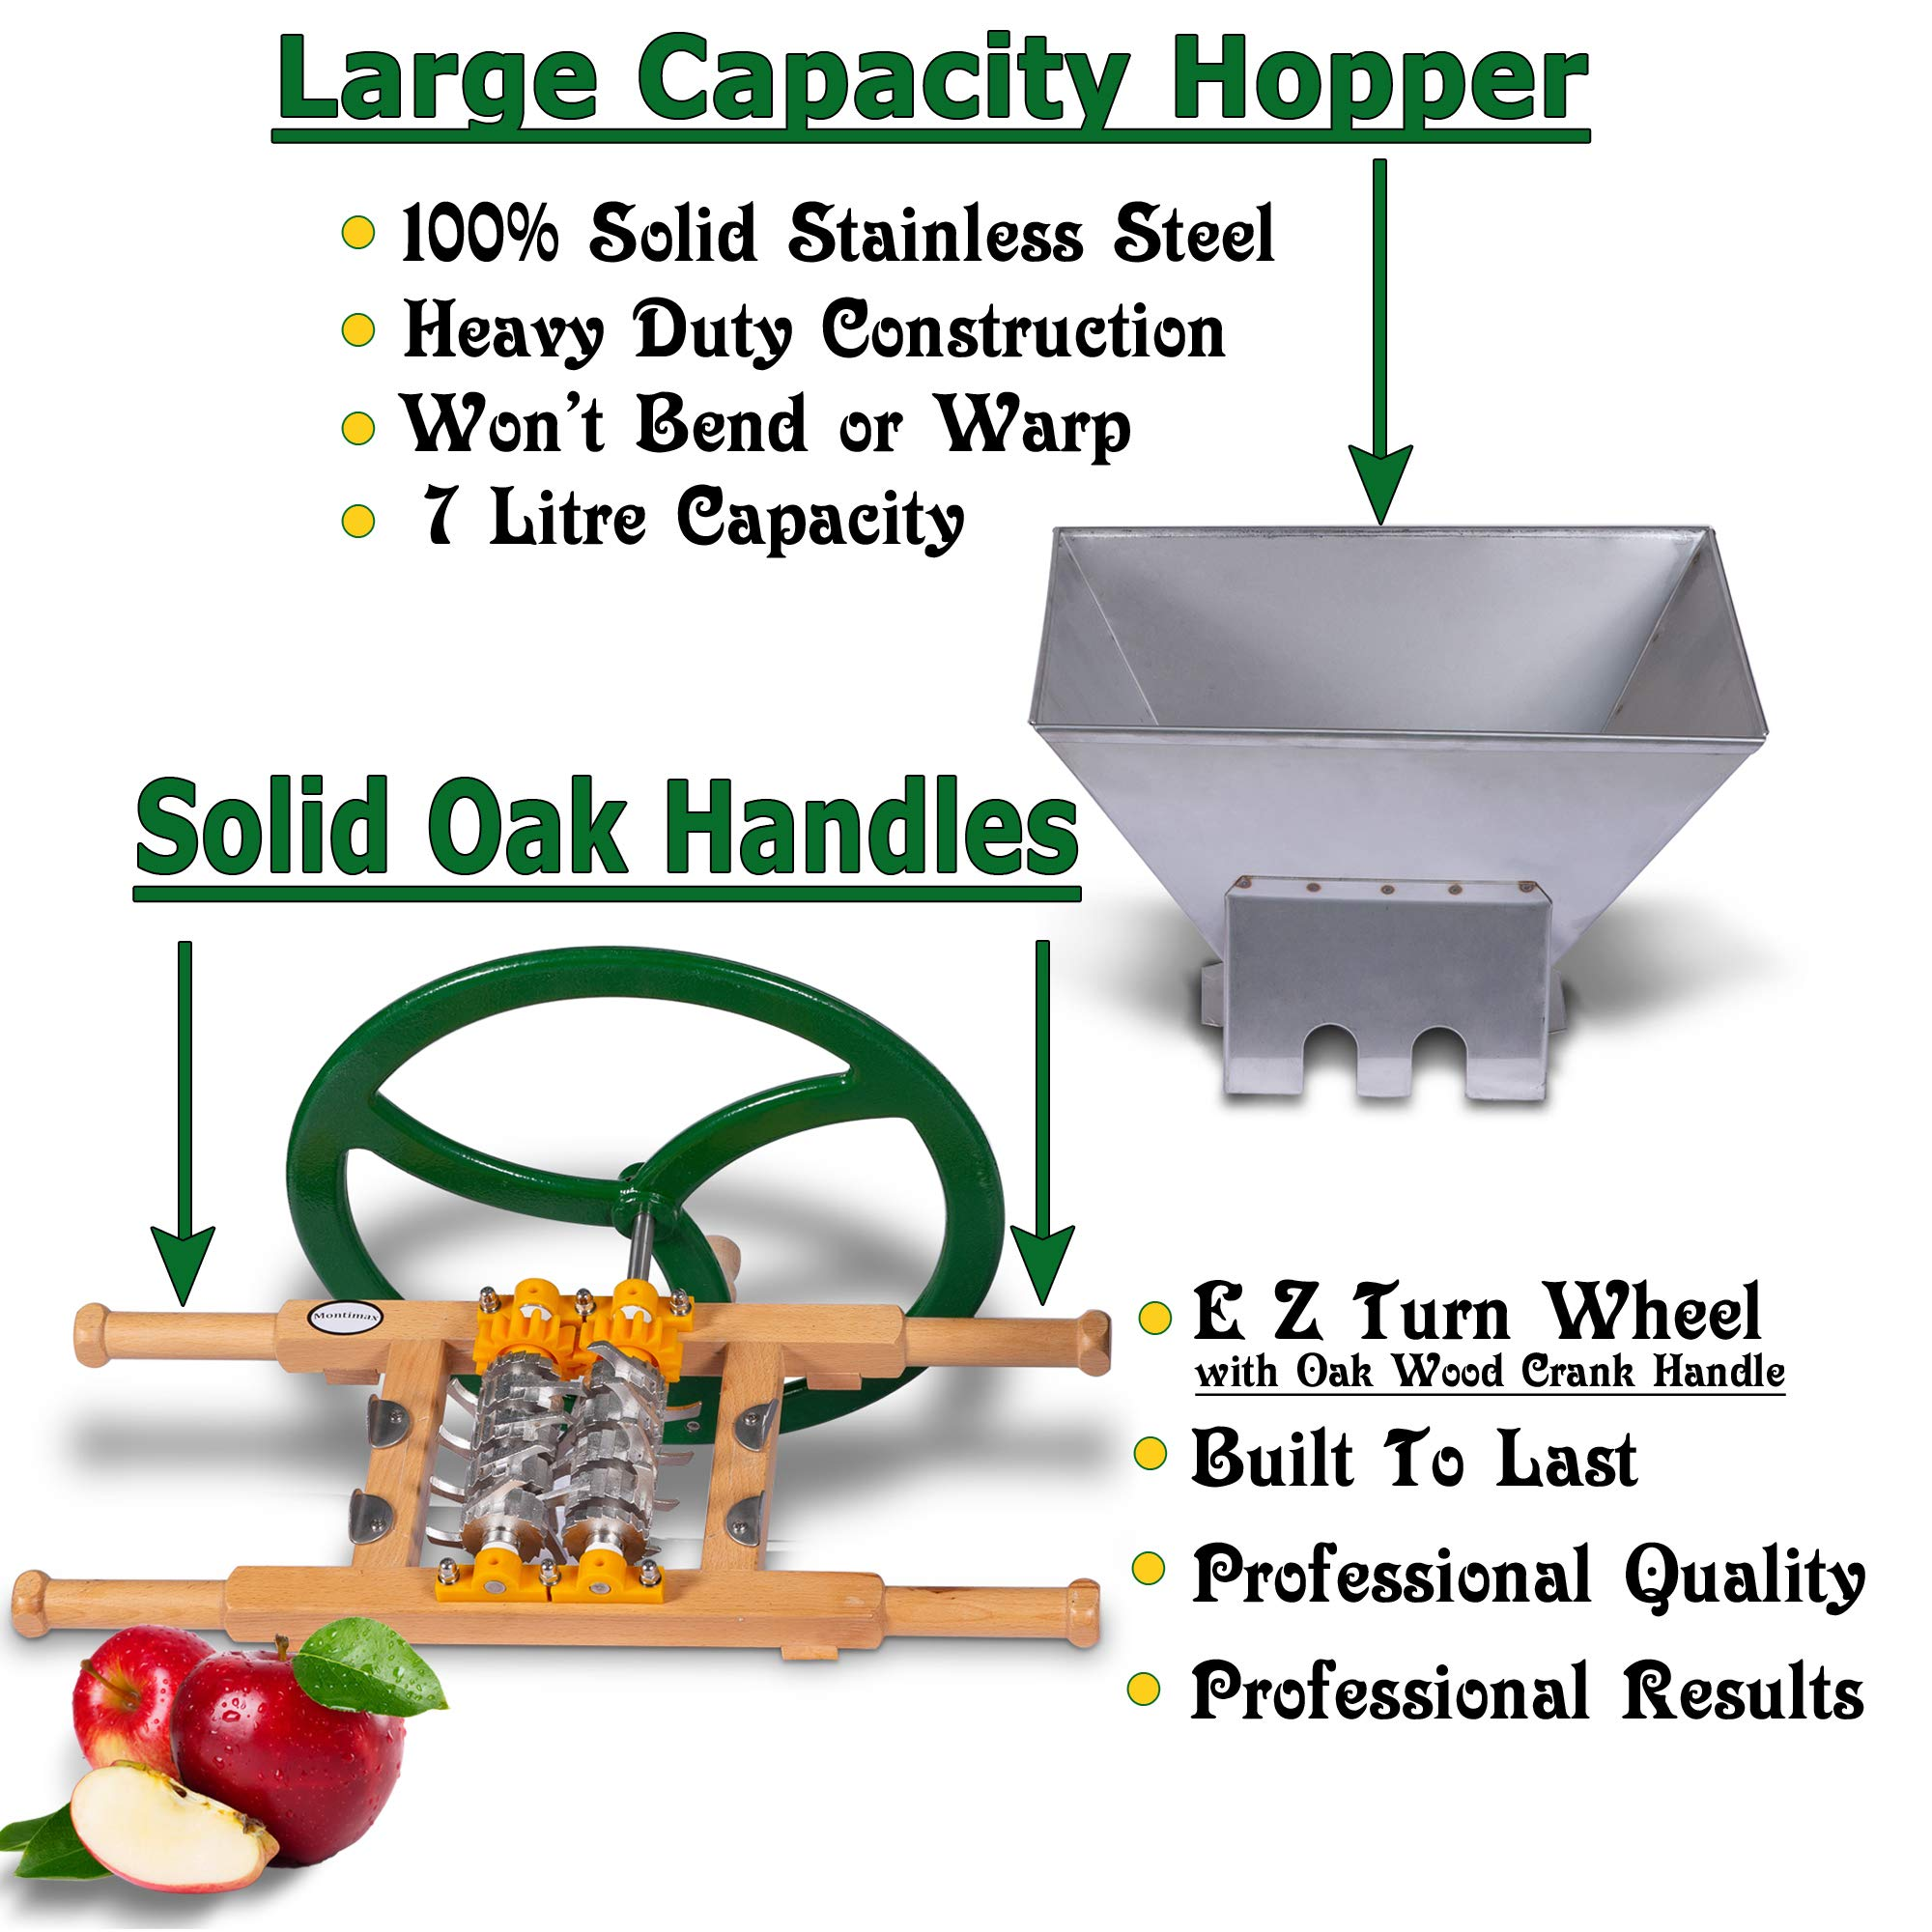 Fruit & Apple Crusher for Wine & Cider Pressing - Manual Juicer Grinder & Fruit Scatter - Heavy Duty Stainless Steel Cutting Blades & Hopper - By Green Max Products by Montimax By Green Max Products (Image #2)